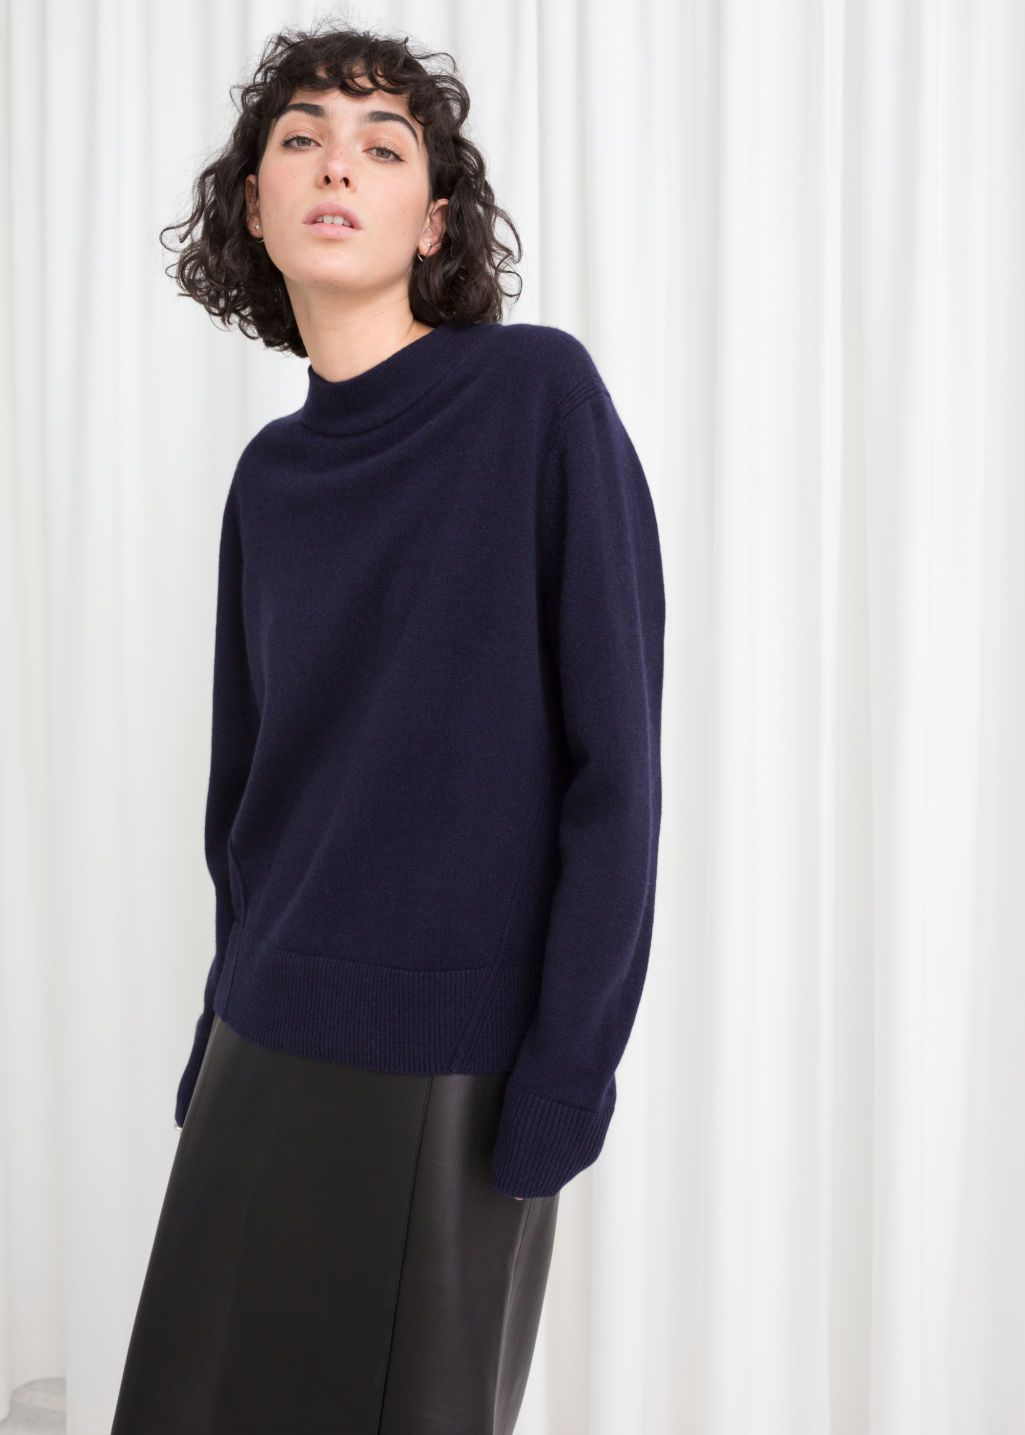 Relaxed Fit Cashmere Sweater | Fitted cashmere sweater